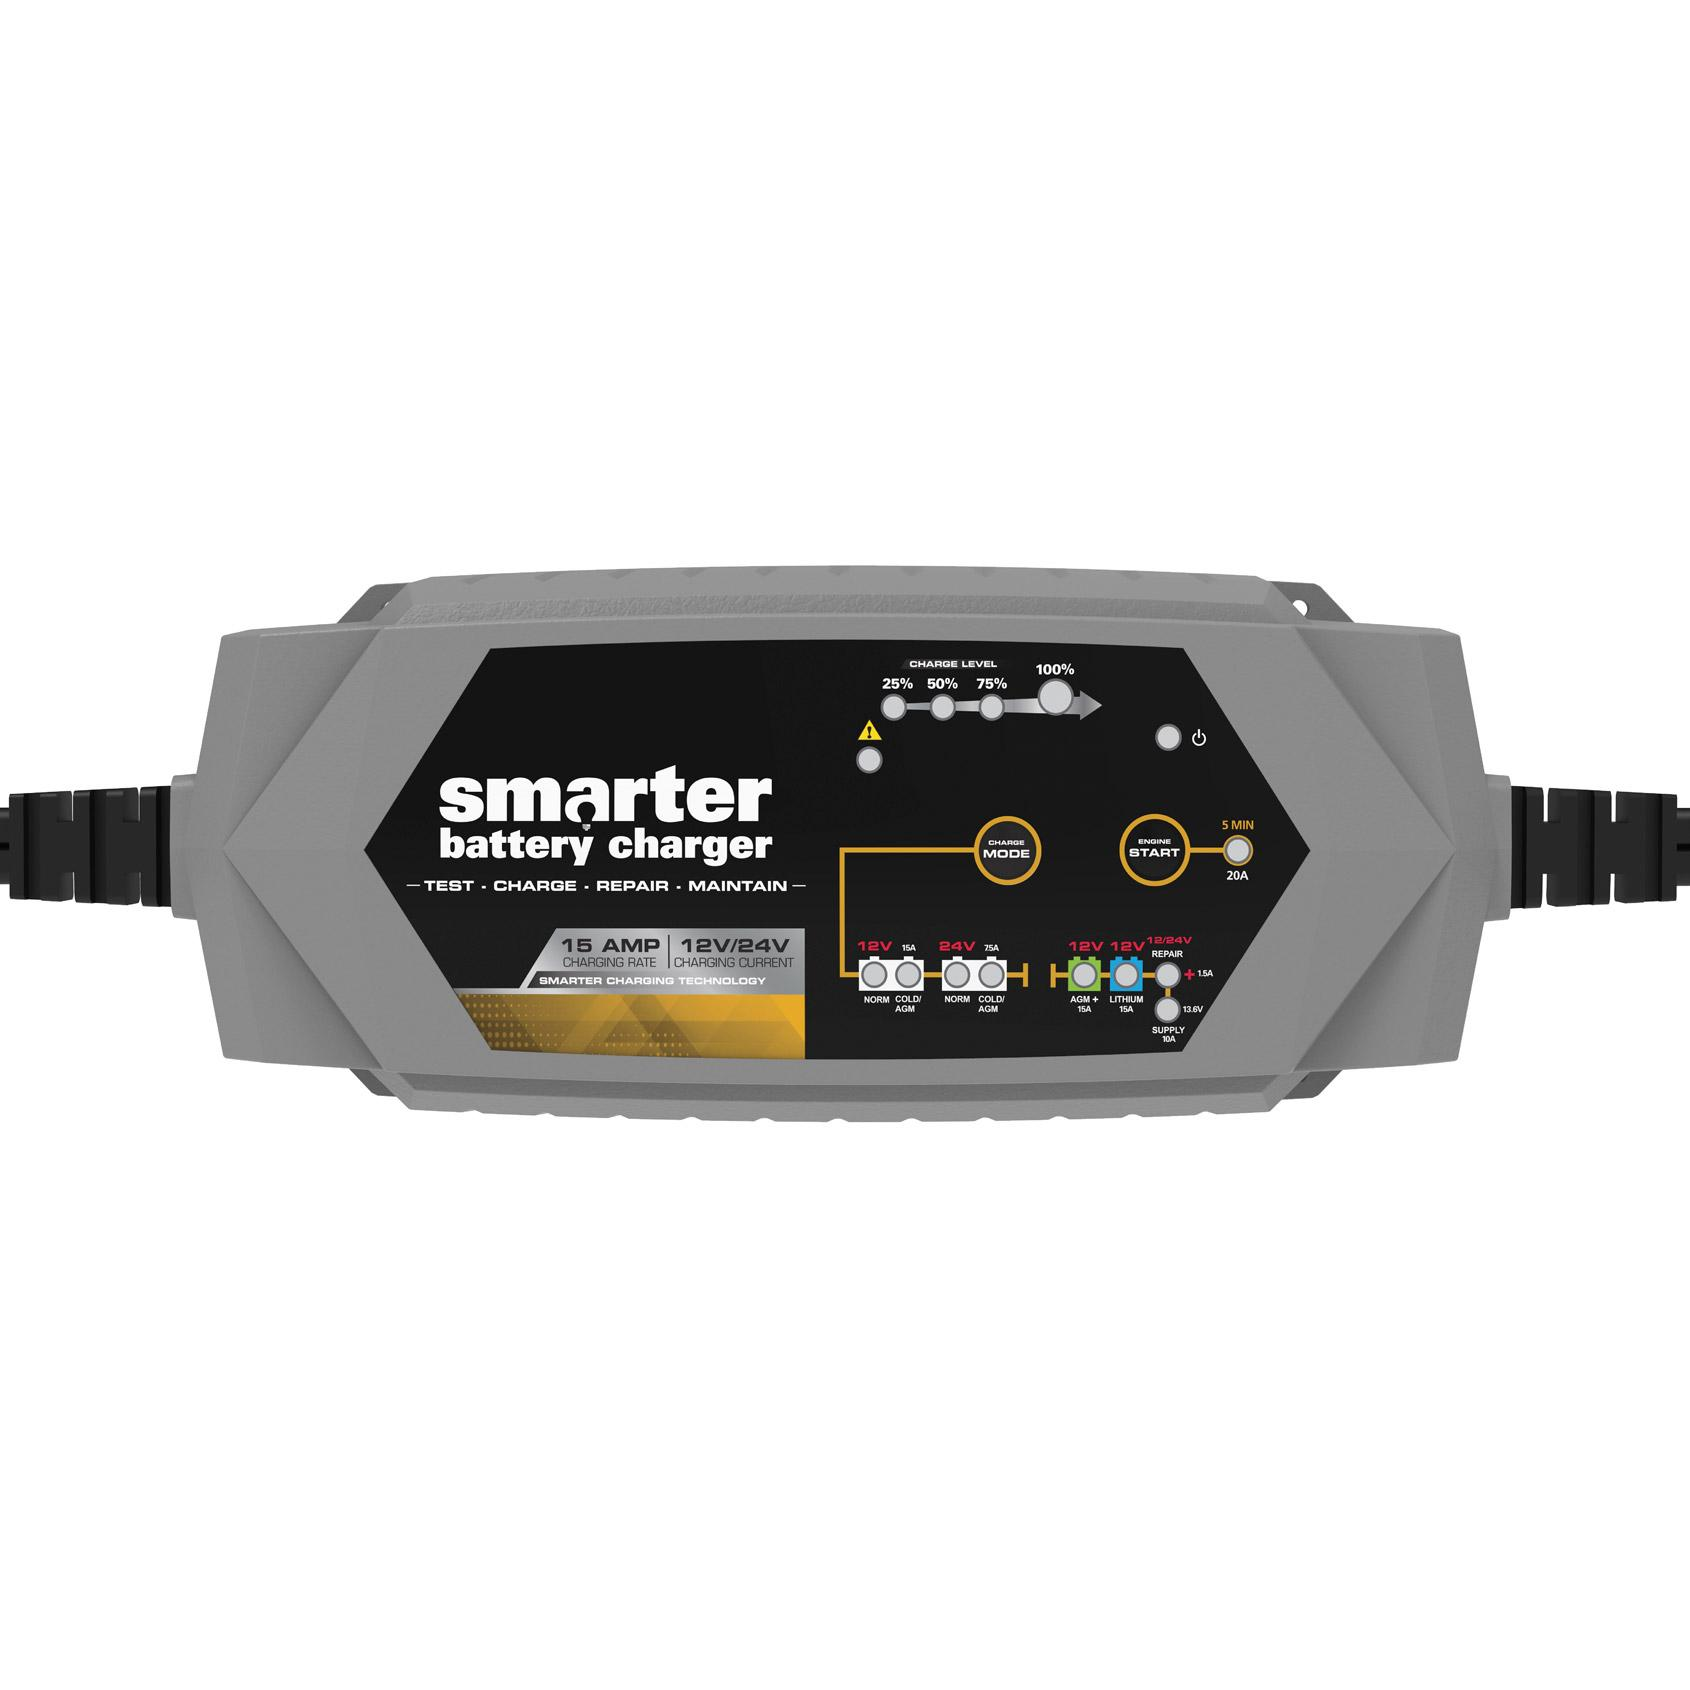 Smartech 6/12V 15A Smart Automotive Battery Charger, Maintainer, Repairer,  Tester with Advanced Desulphation Process